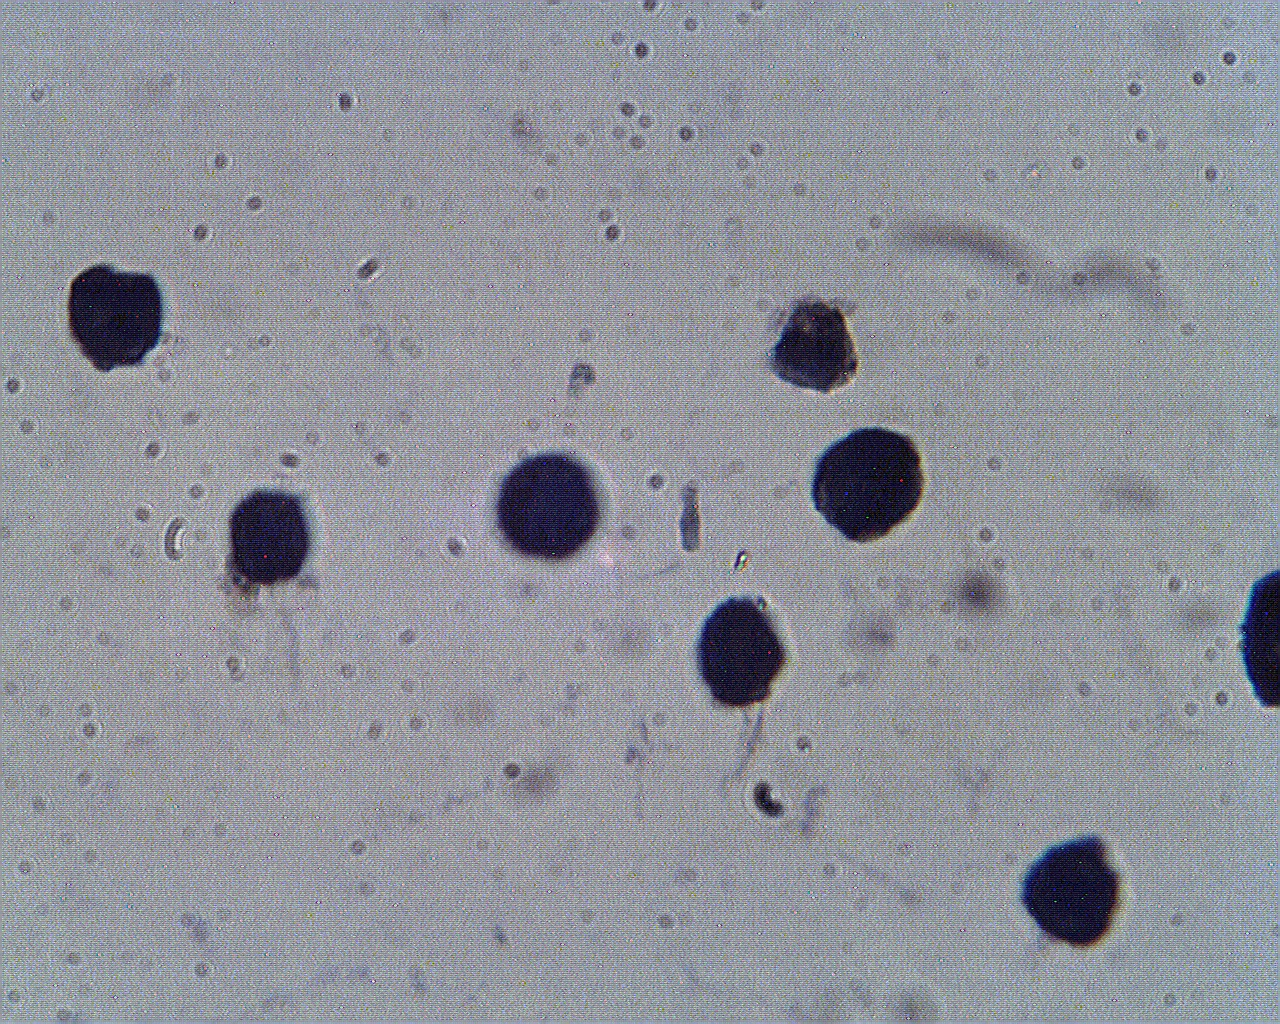 Staining of Hep G2 cells with PCSK9 antibody (Cat. No. X2740P) at 2 µg/ml.